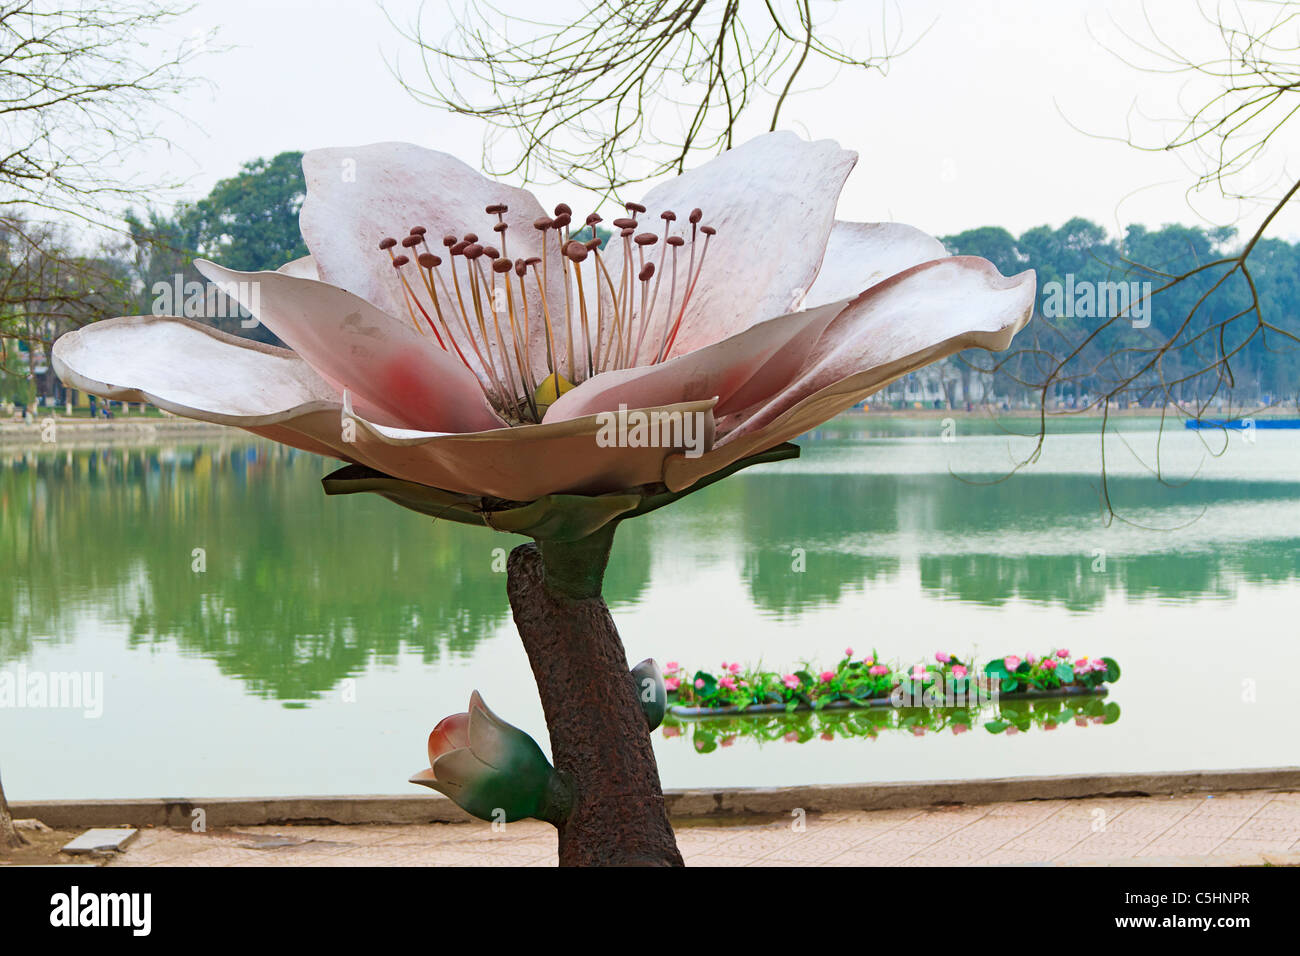 Large Statue Of Lotus Flower With Real Lotus Flowers On A Floating